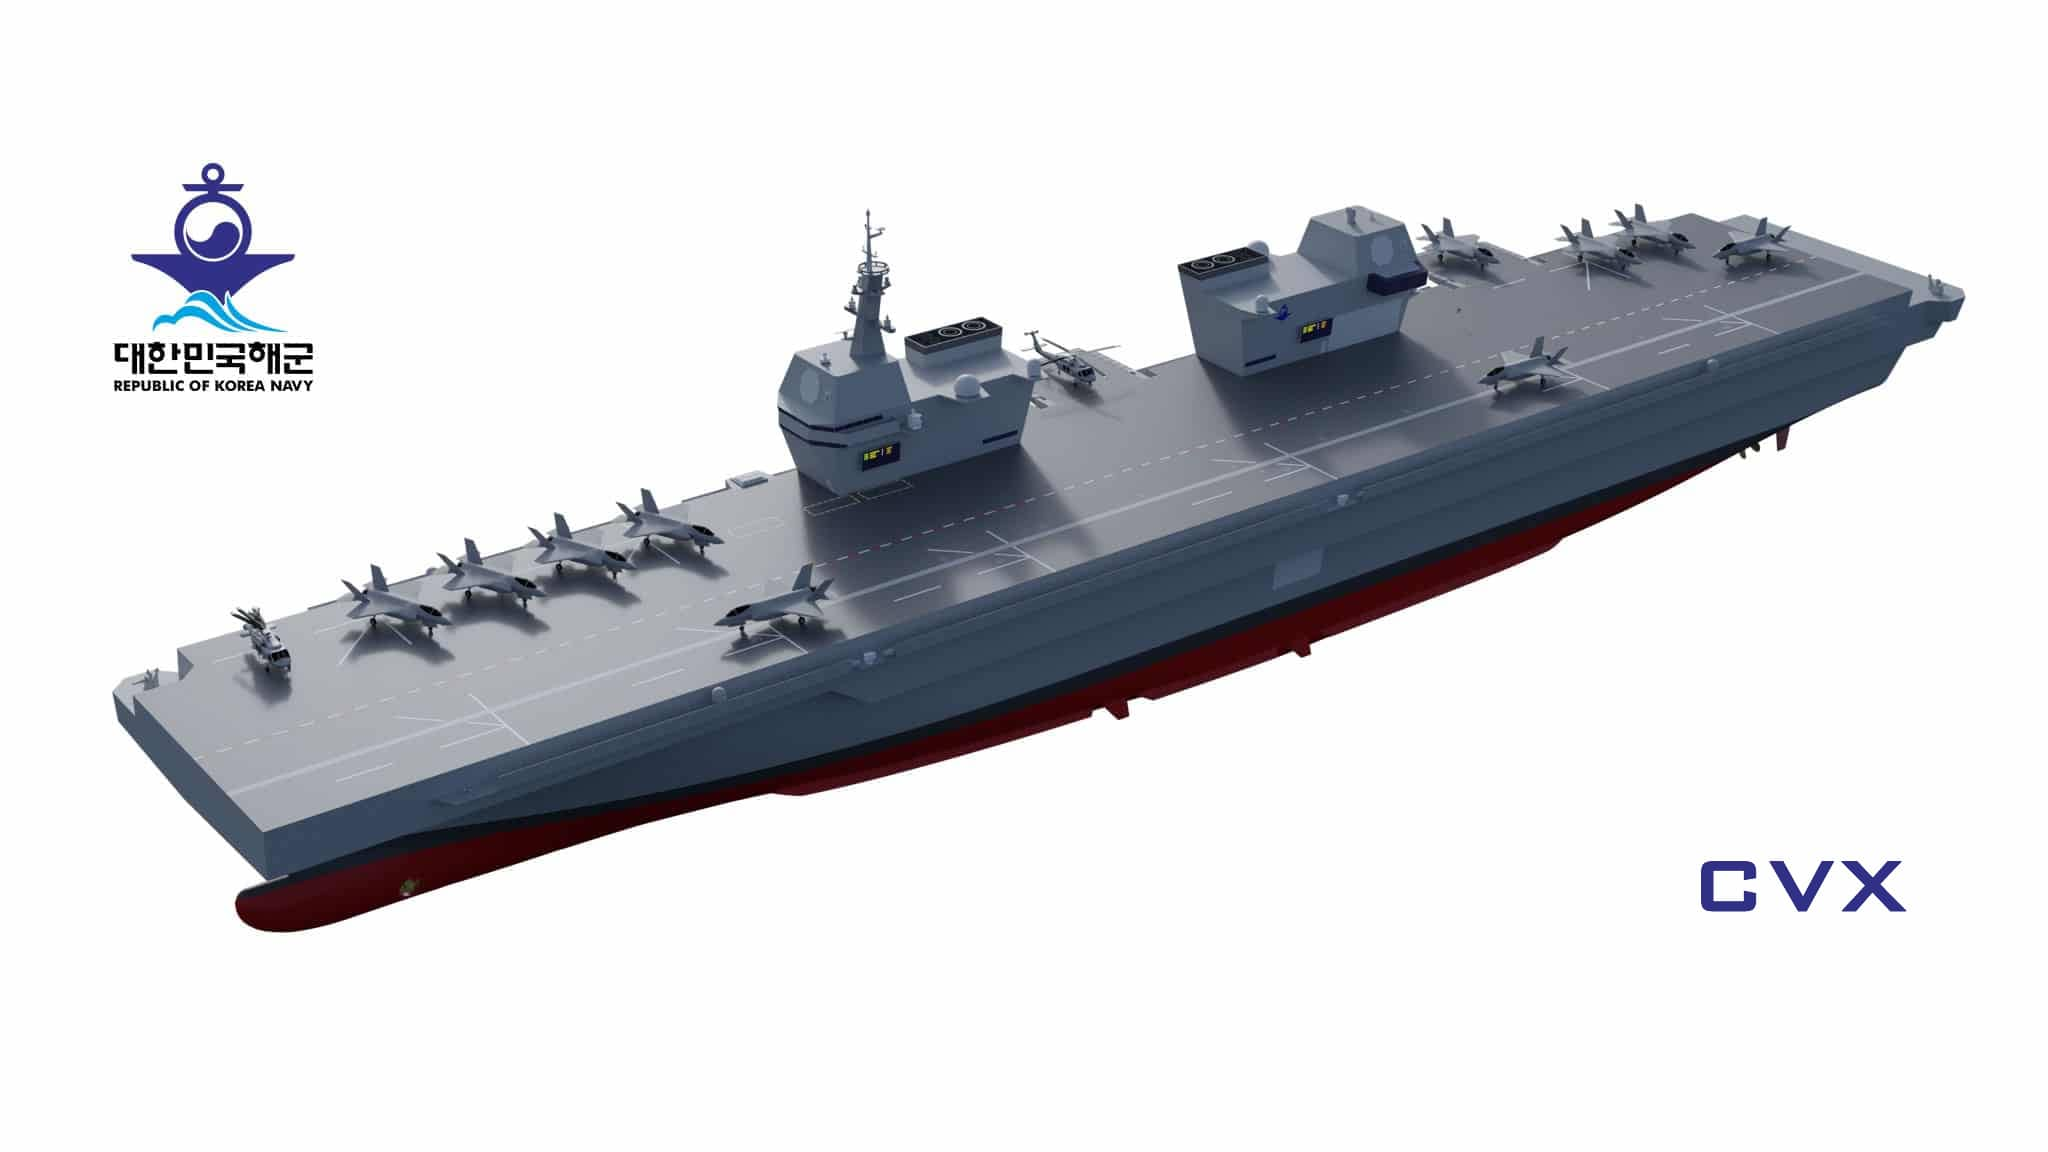 Fincantieri to Support Daewoo in Design of New South Korean Aircraft Carriers